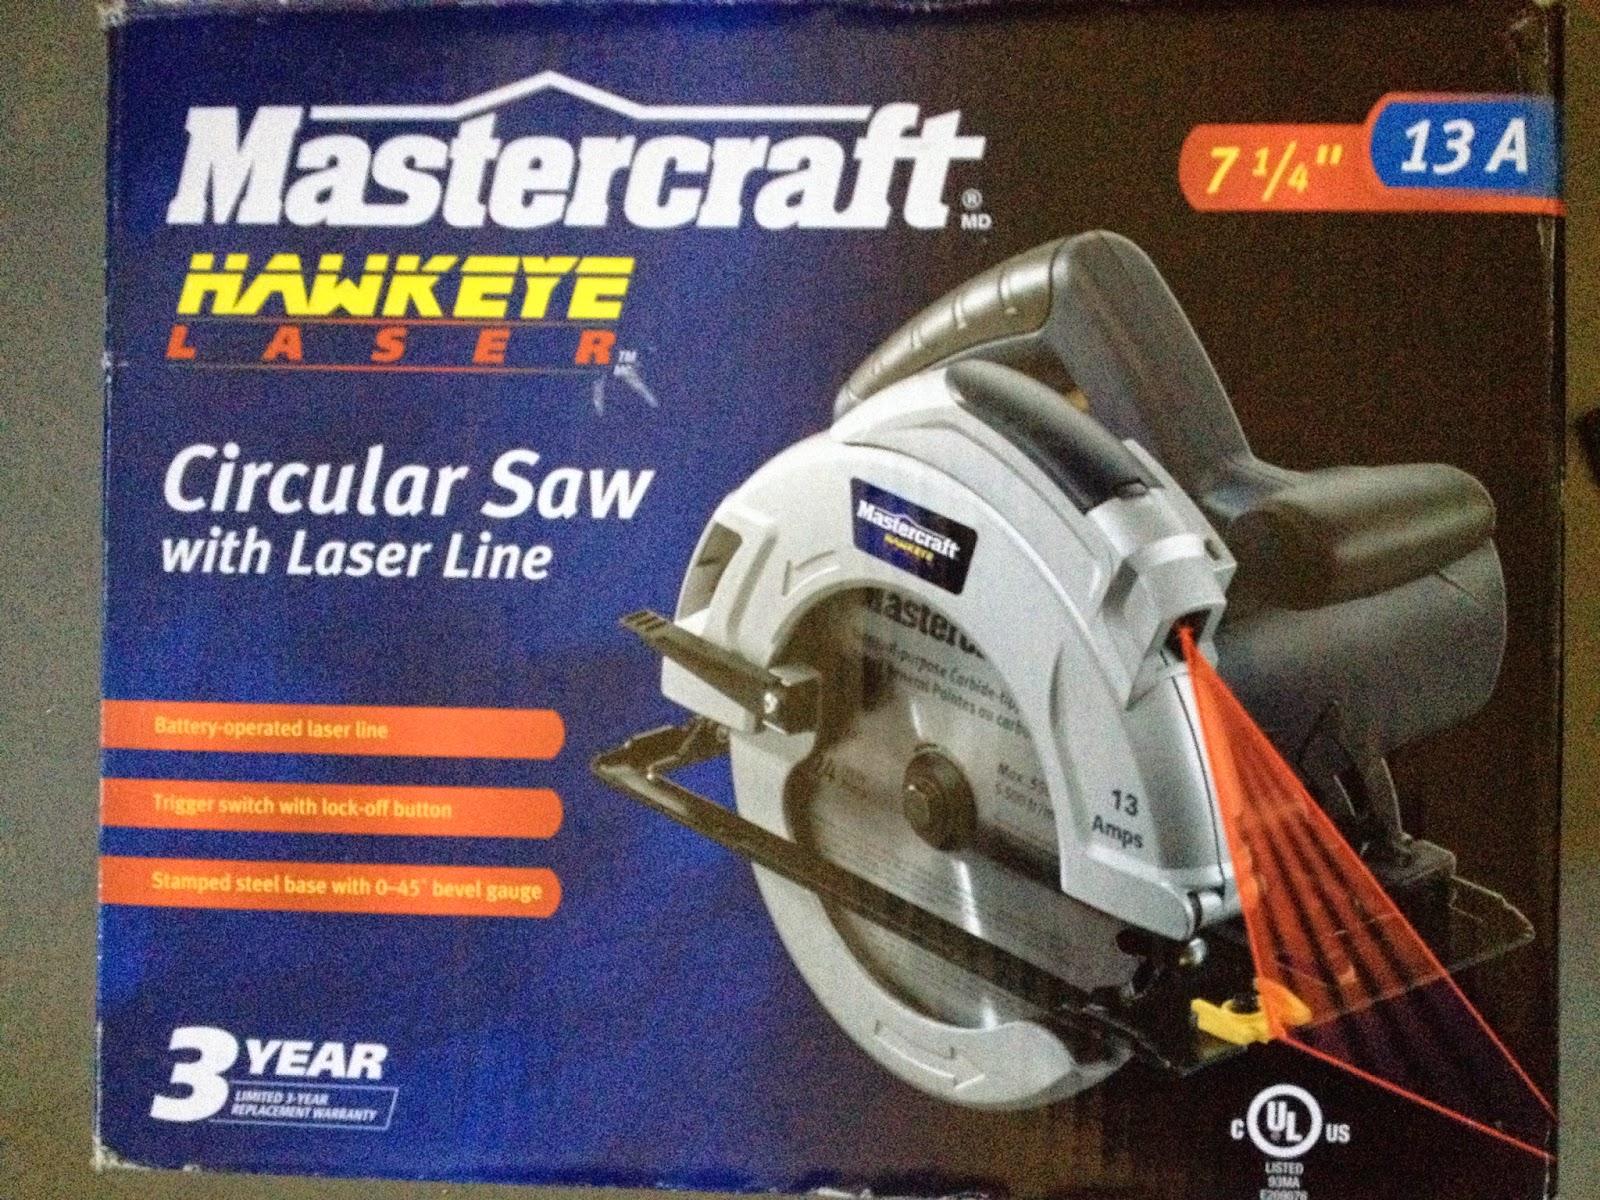 Mastercraft Brad Nailer Manual